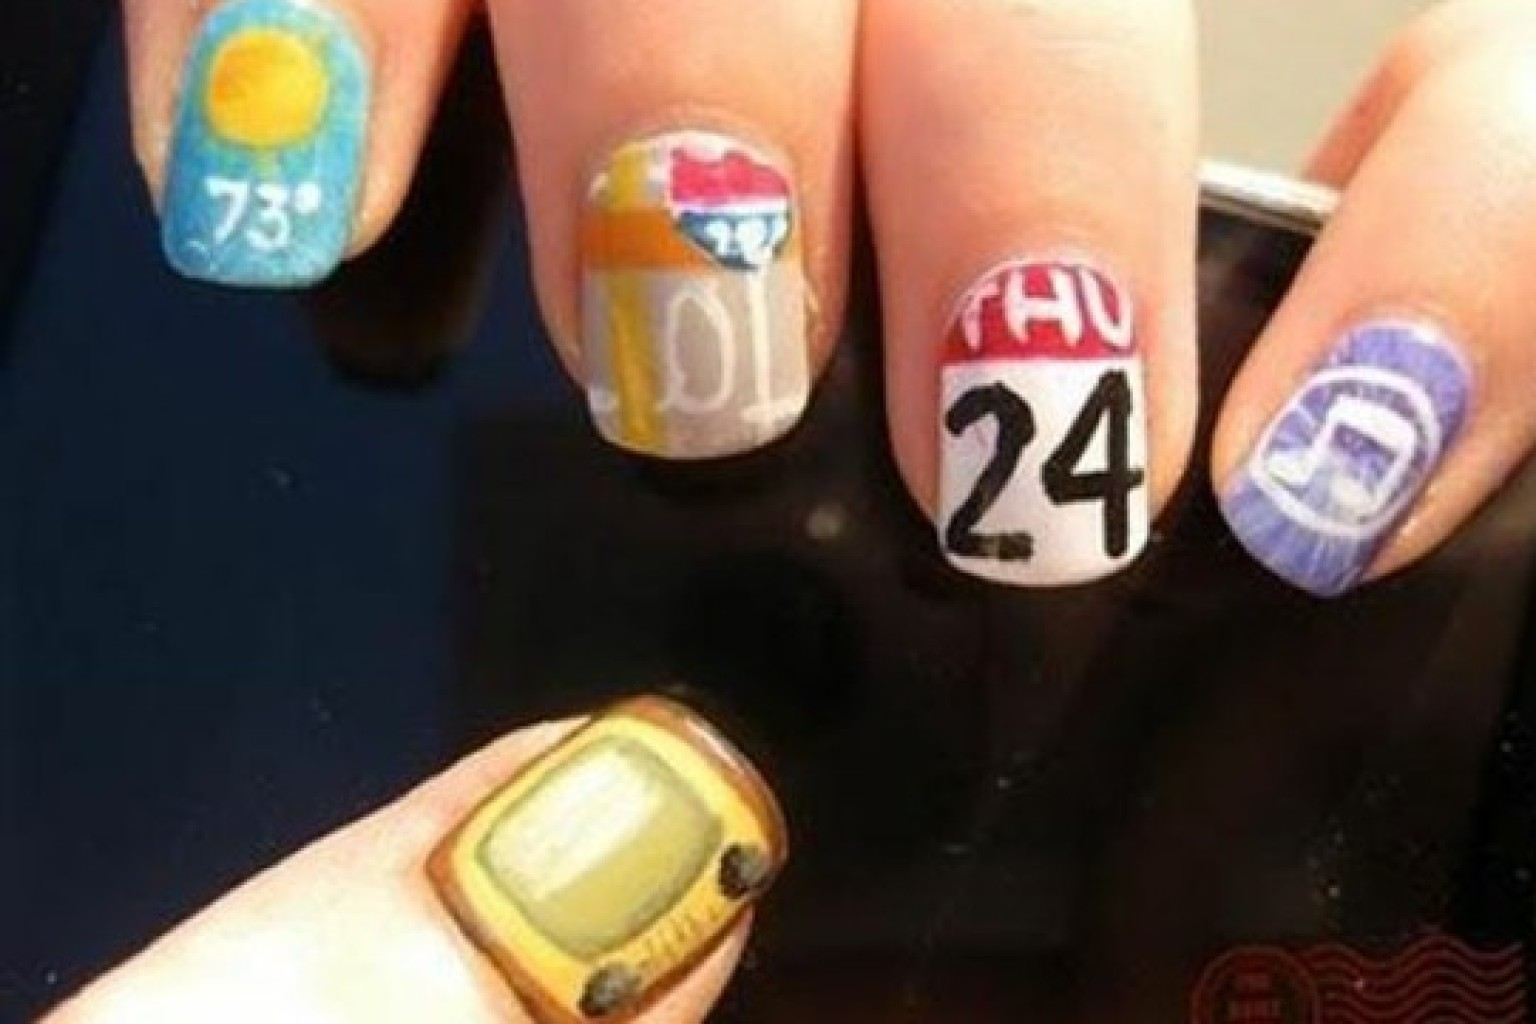 DIY Nail Art: iPhone App-Inspired Manicure (PHOTOS) | HuffPost